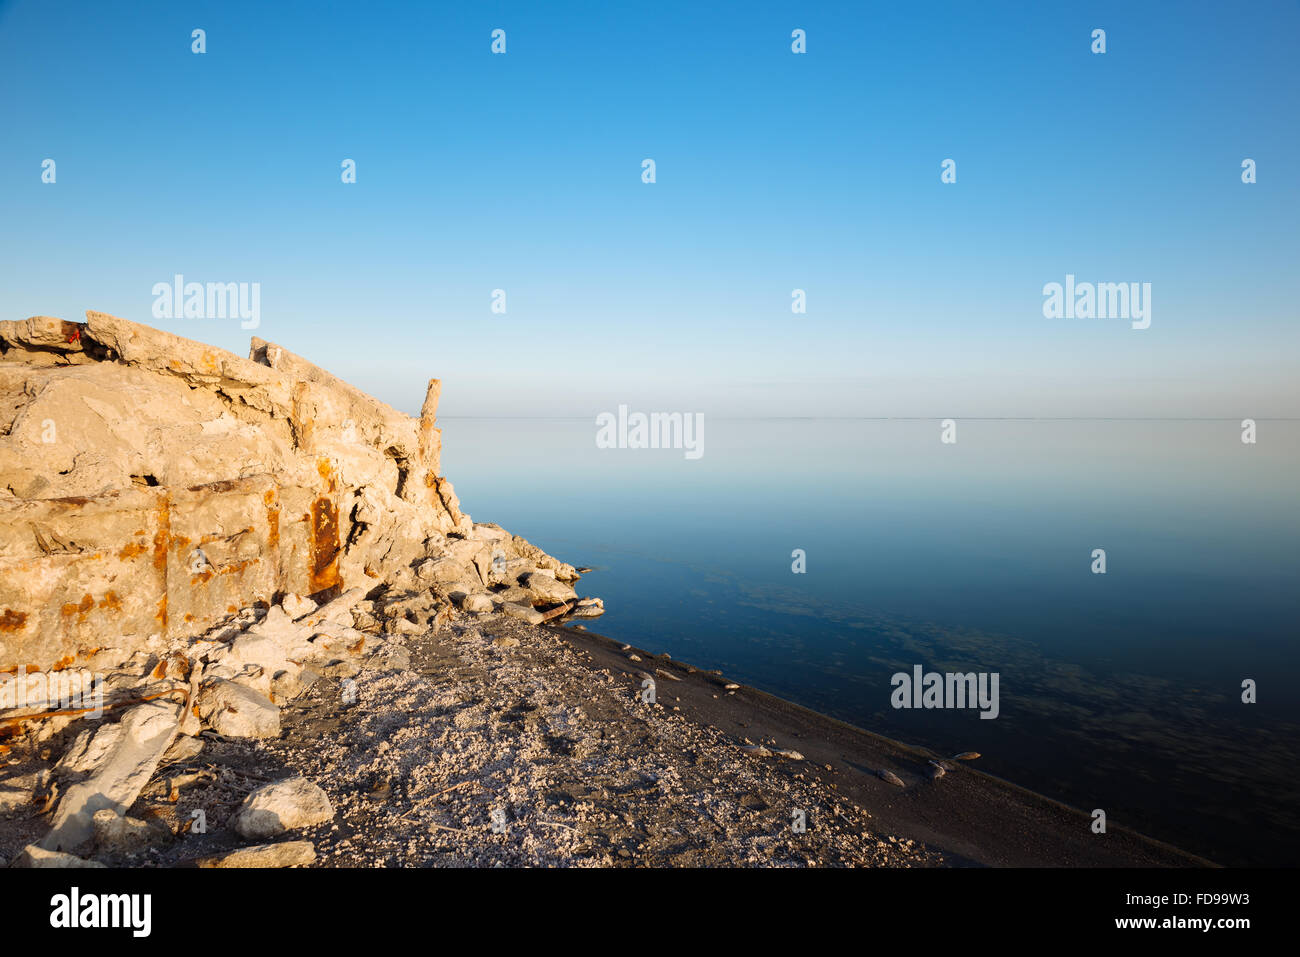 Salt-encrusted remains of Bombay Beach, on the eastern shore of the Salton Sea, California - Stock Image